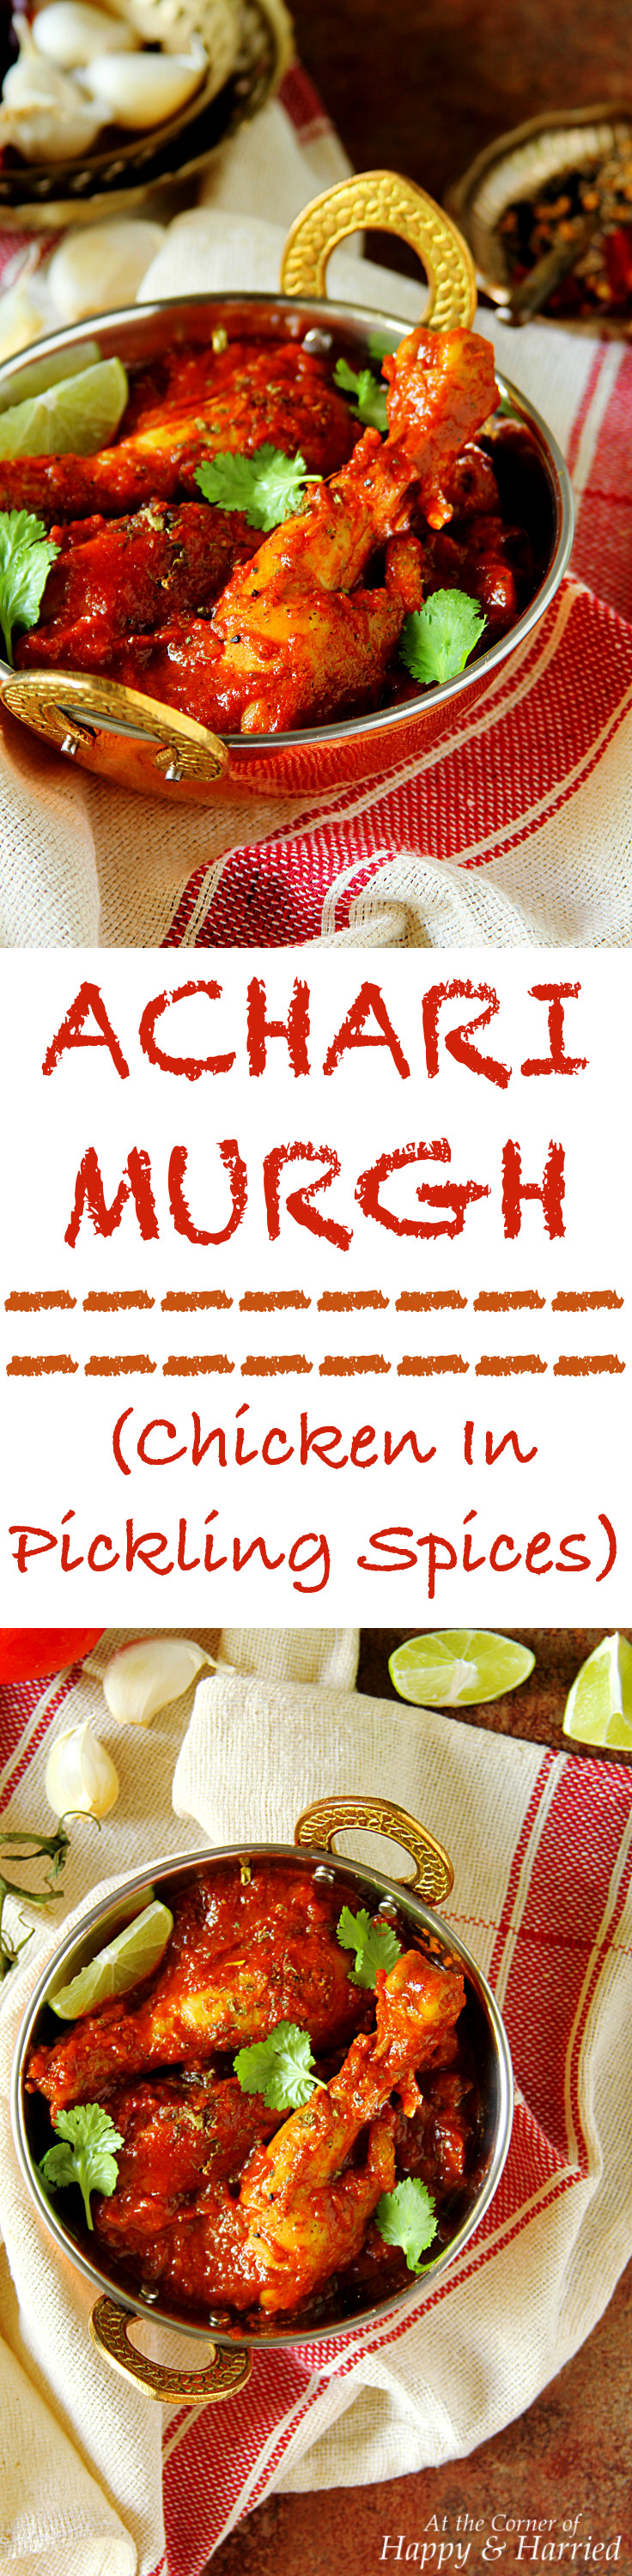 achari-murgh-chicken-in-pickling-spices